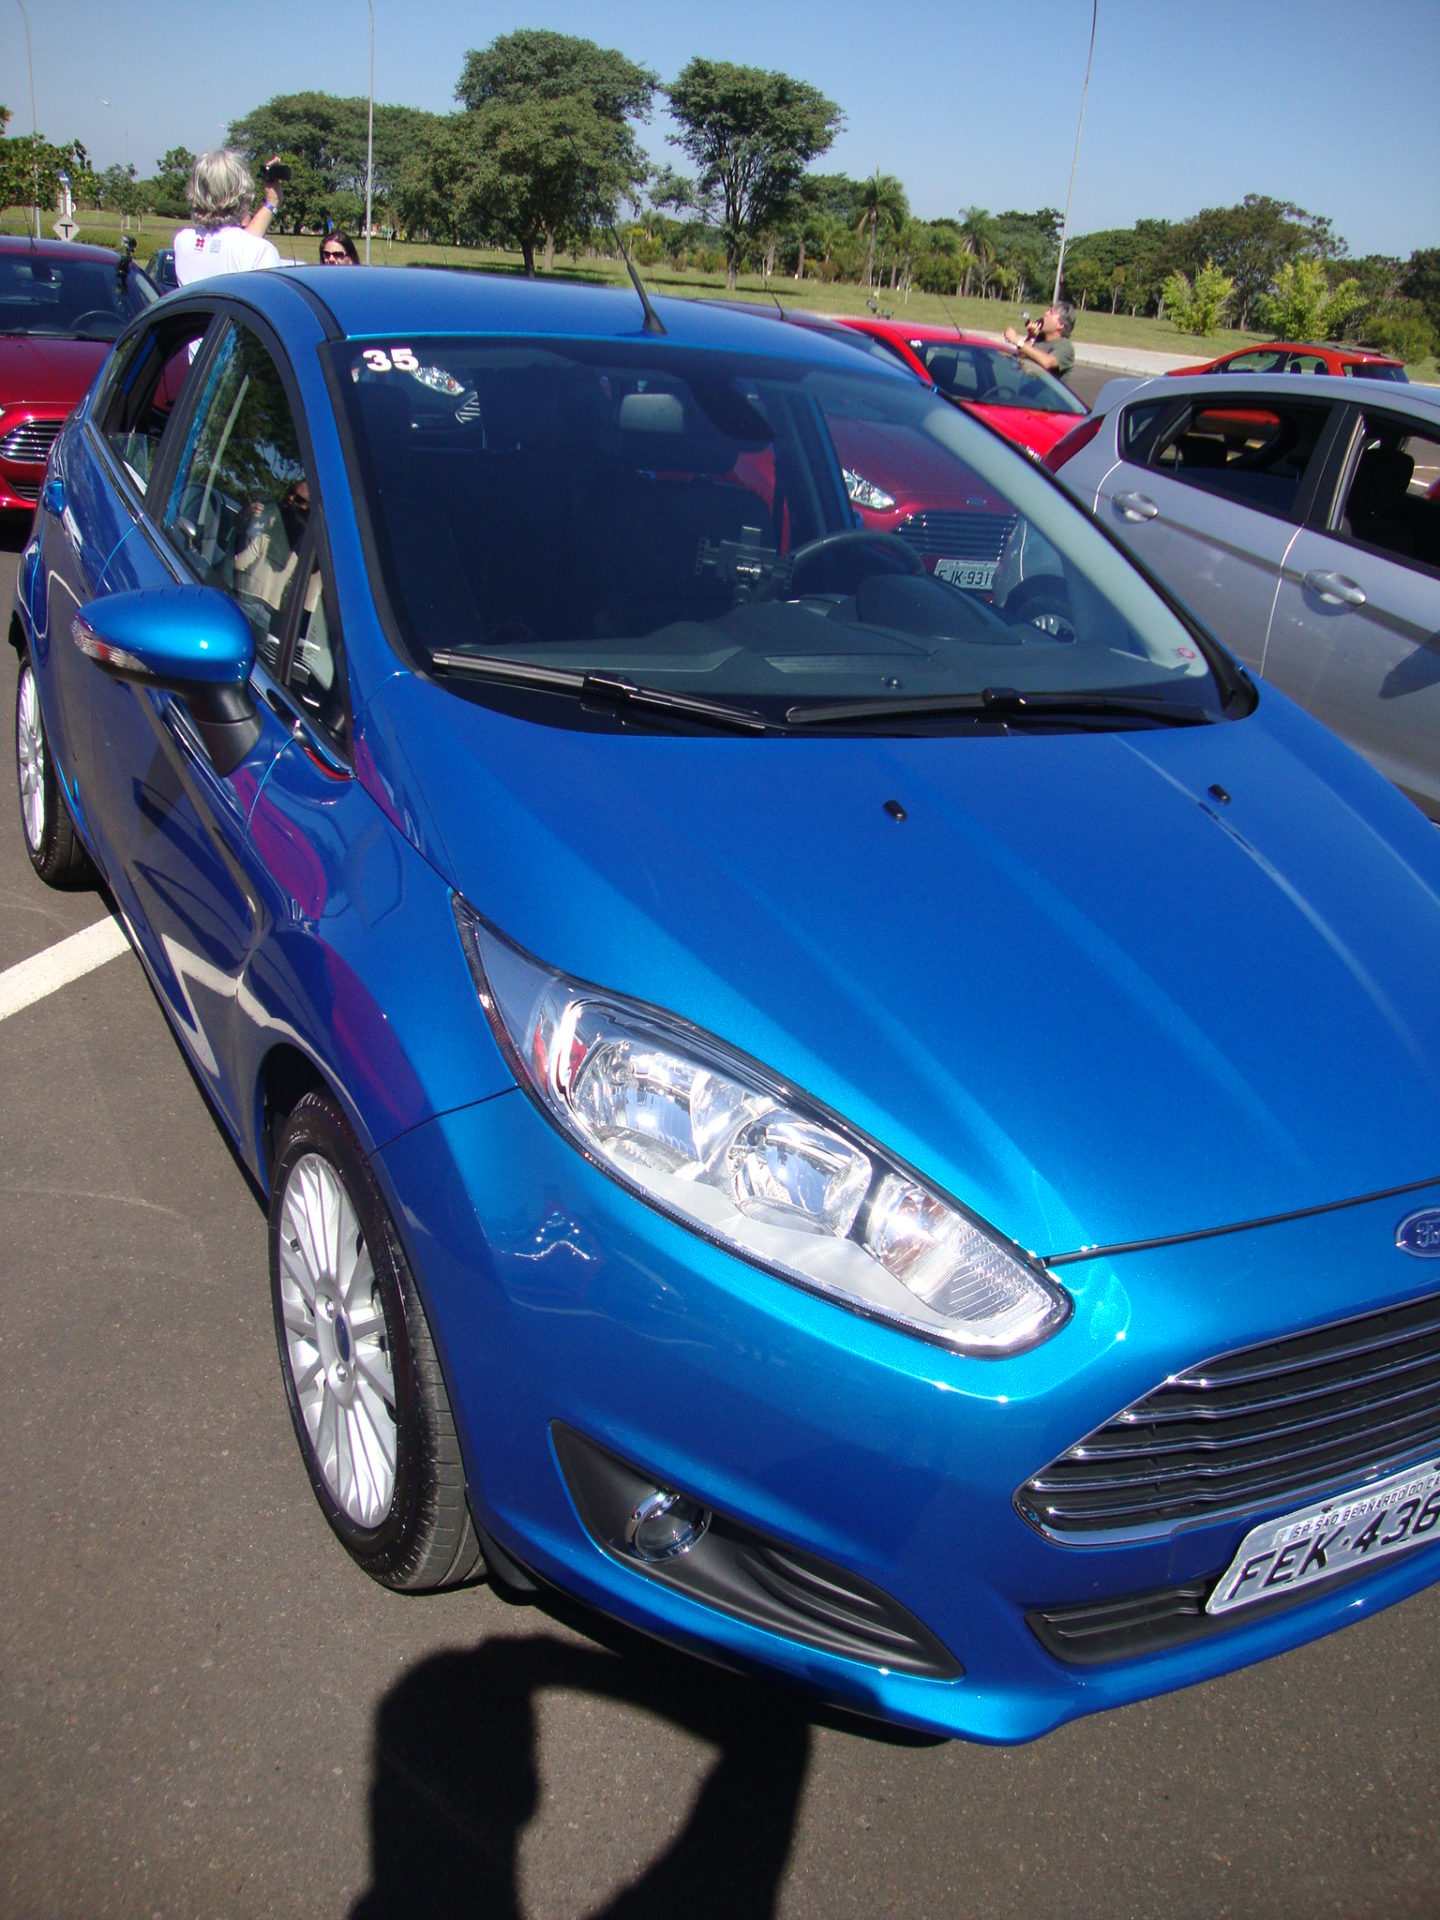 New Fiesta 2014 Test Drive Com O Ford New Fiesta 2014 Passeio Na